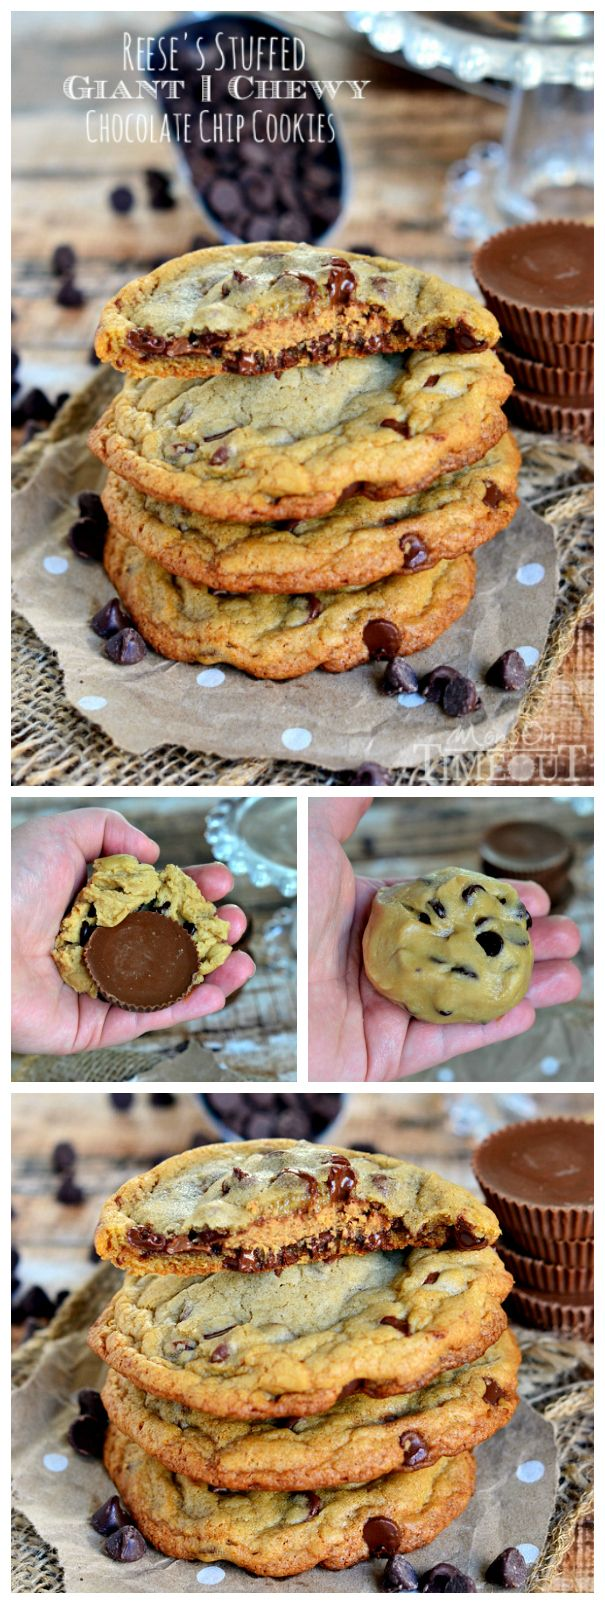 Reese's Stuffed Giant, Chewy Chocolate Chip Cookies | MomOnTimeout.comChocolate Chips, Chewy Chocolates, Chocolates Chips Cookies, Reese'S Stuffed, Cookie Stuffed Reeses, Chocolate Chip Reeses Cookies, Stuffed Giants, Chocolate Chip Cookies, Reeses Stuffed Cookies